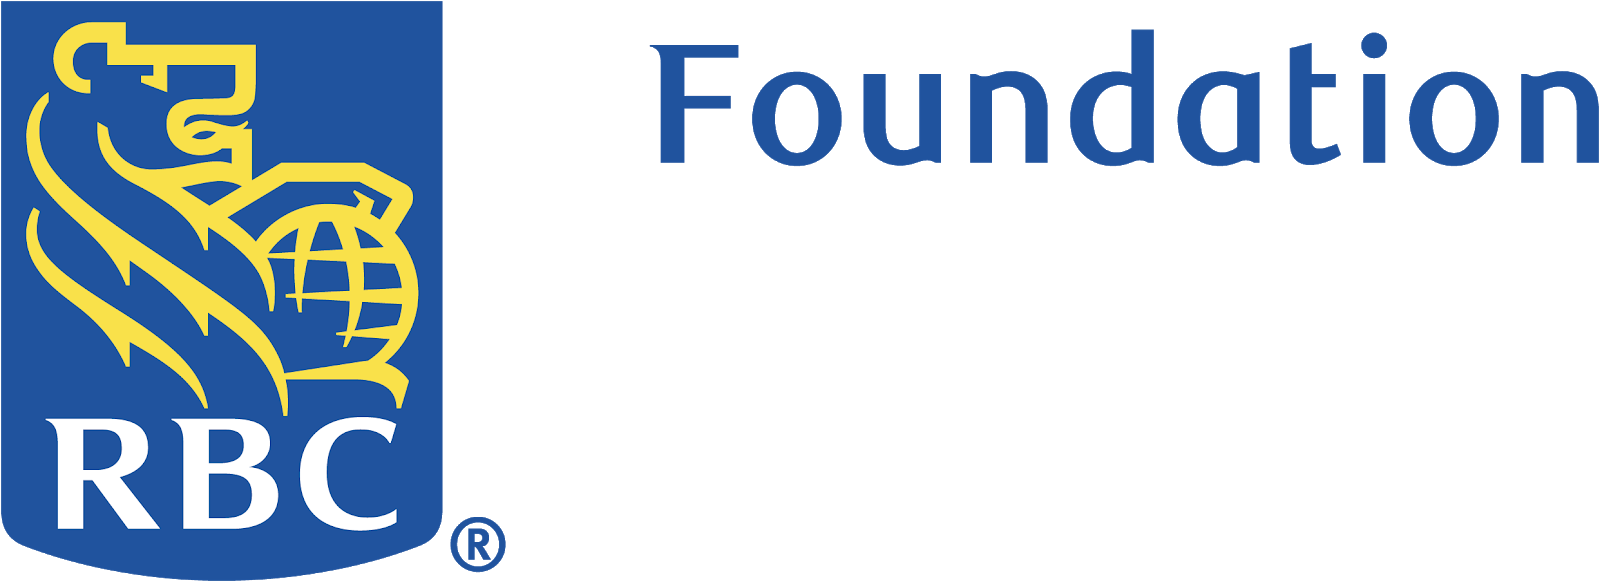 RBC Foundation logo